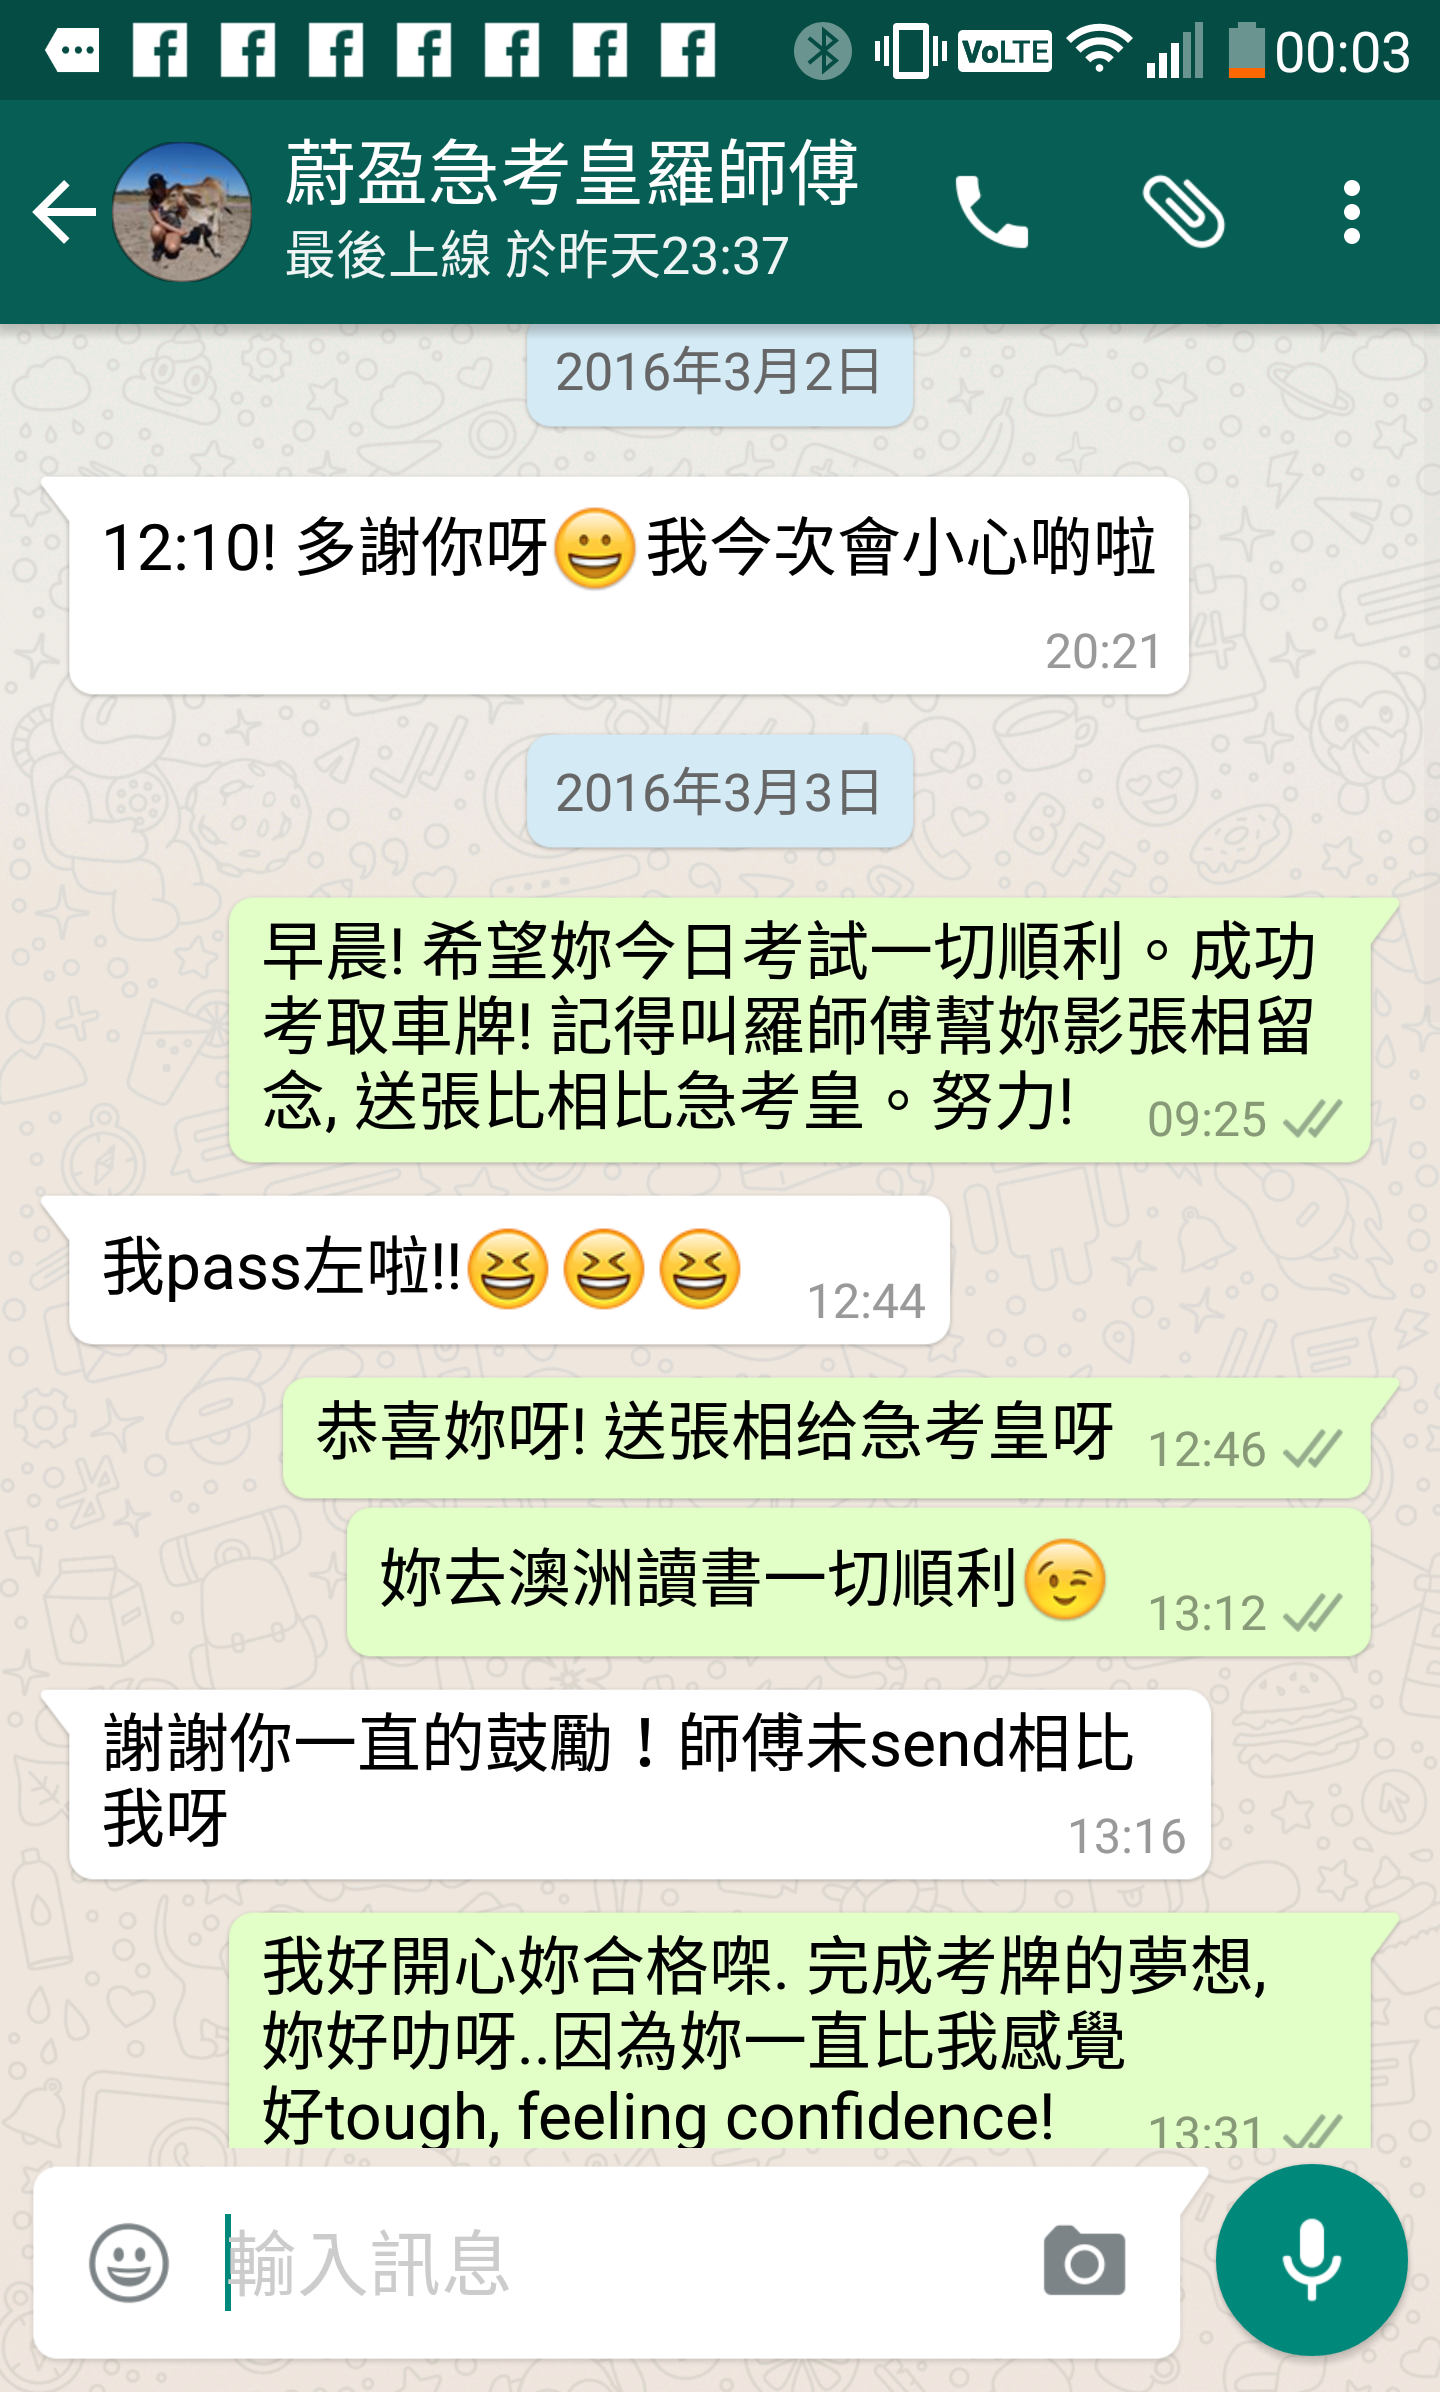 2 蔚盈 whatsapp 1